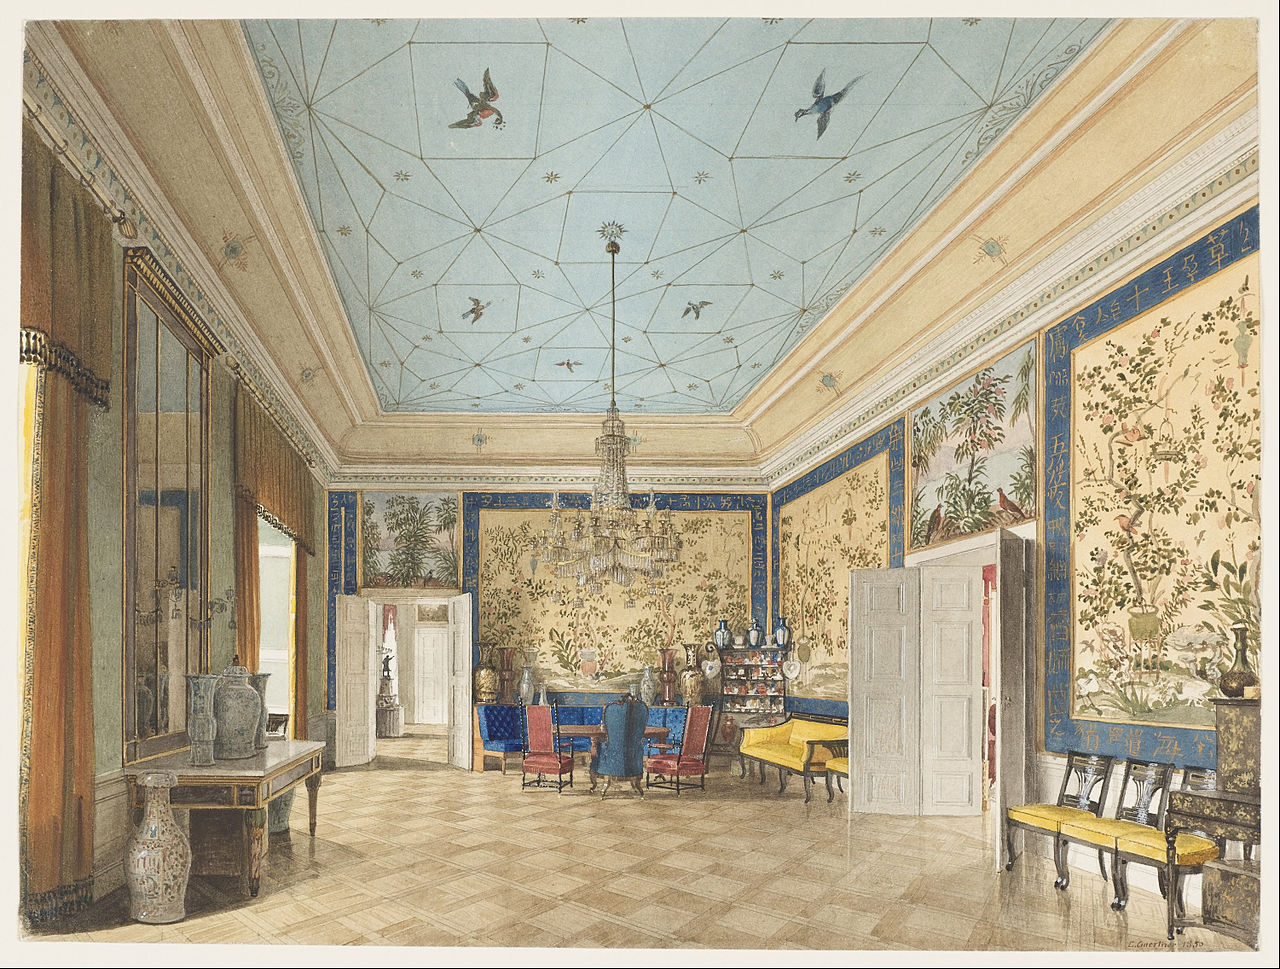 1280px-Eduard_Gaertner_-_The_Chinese_Room_in_the_Royal_Palace,_Berlin_-_Google_Art_Project.jpg